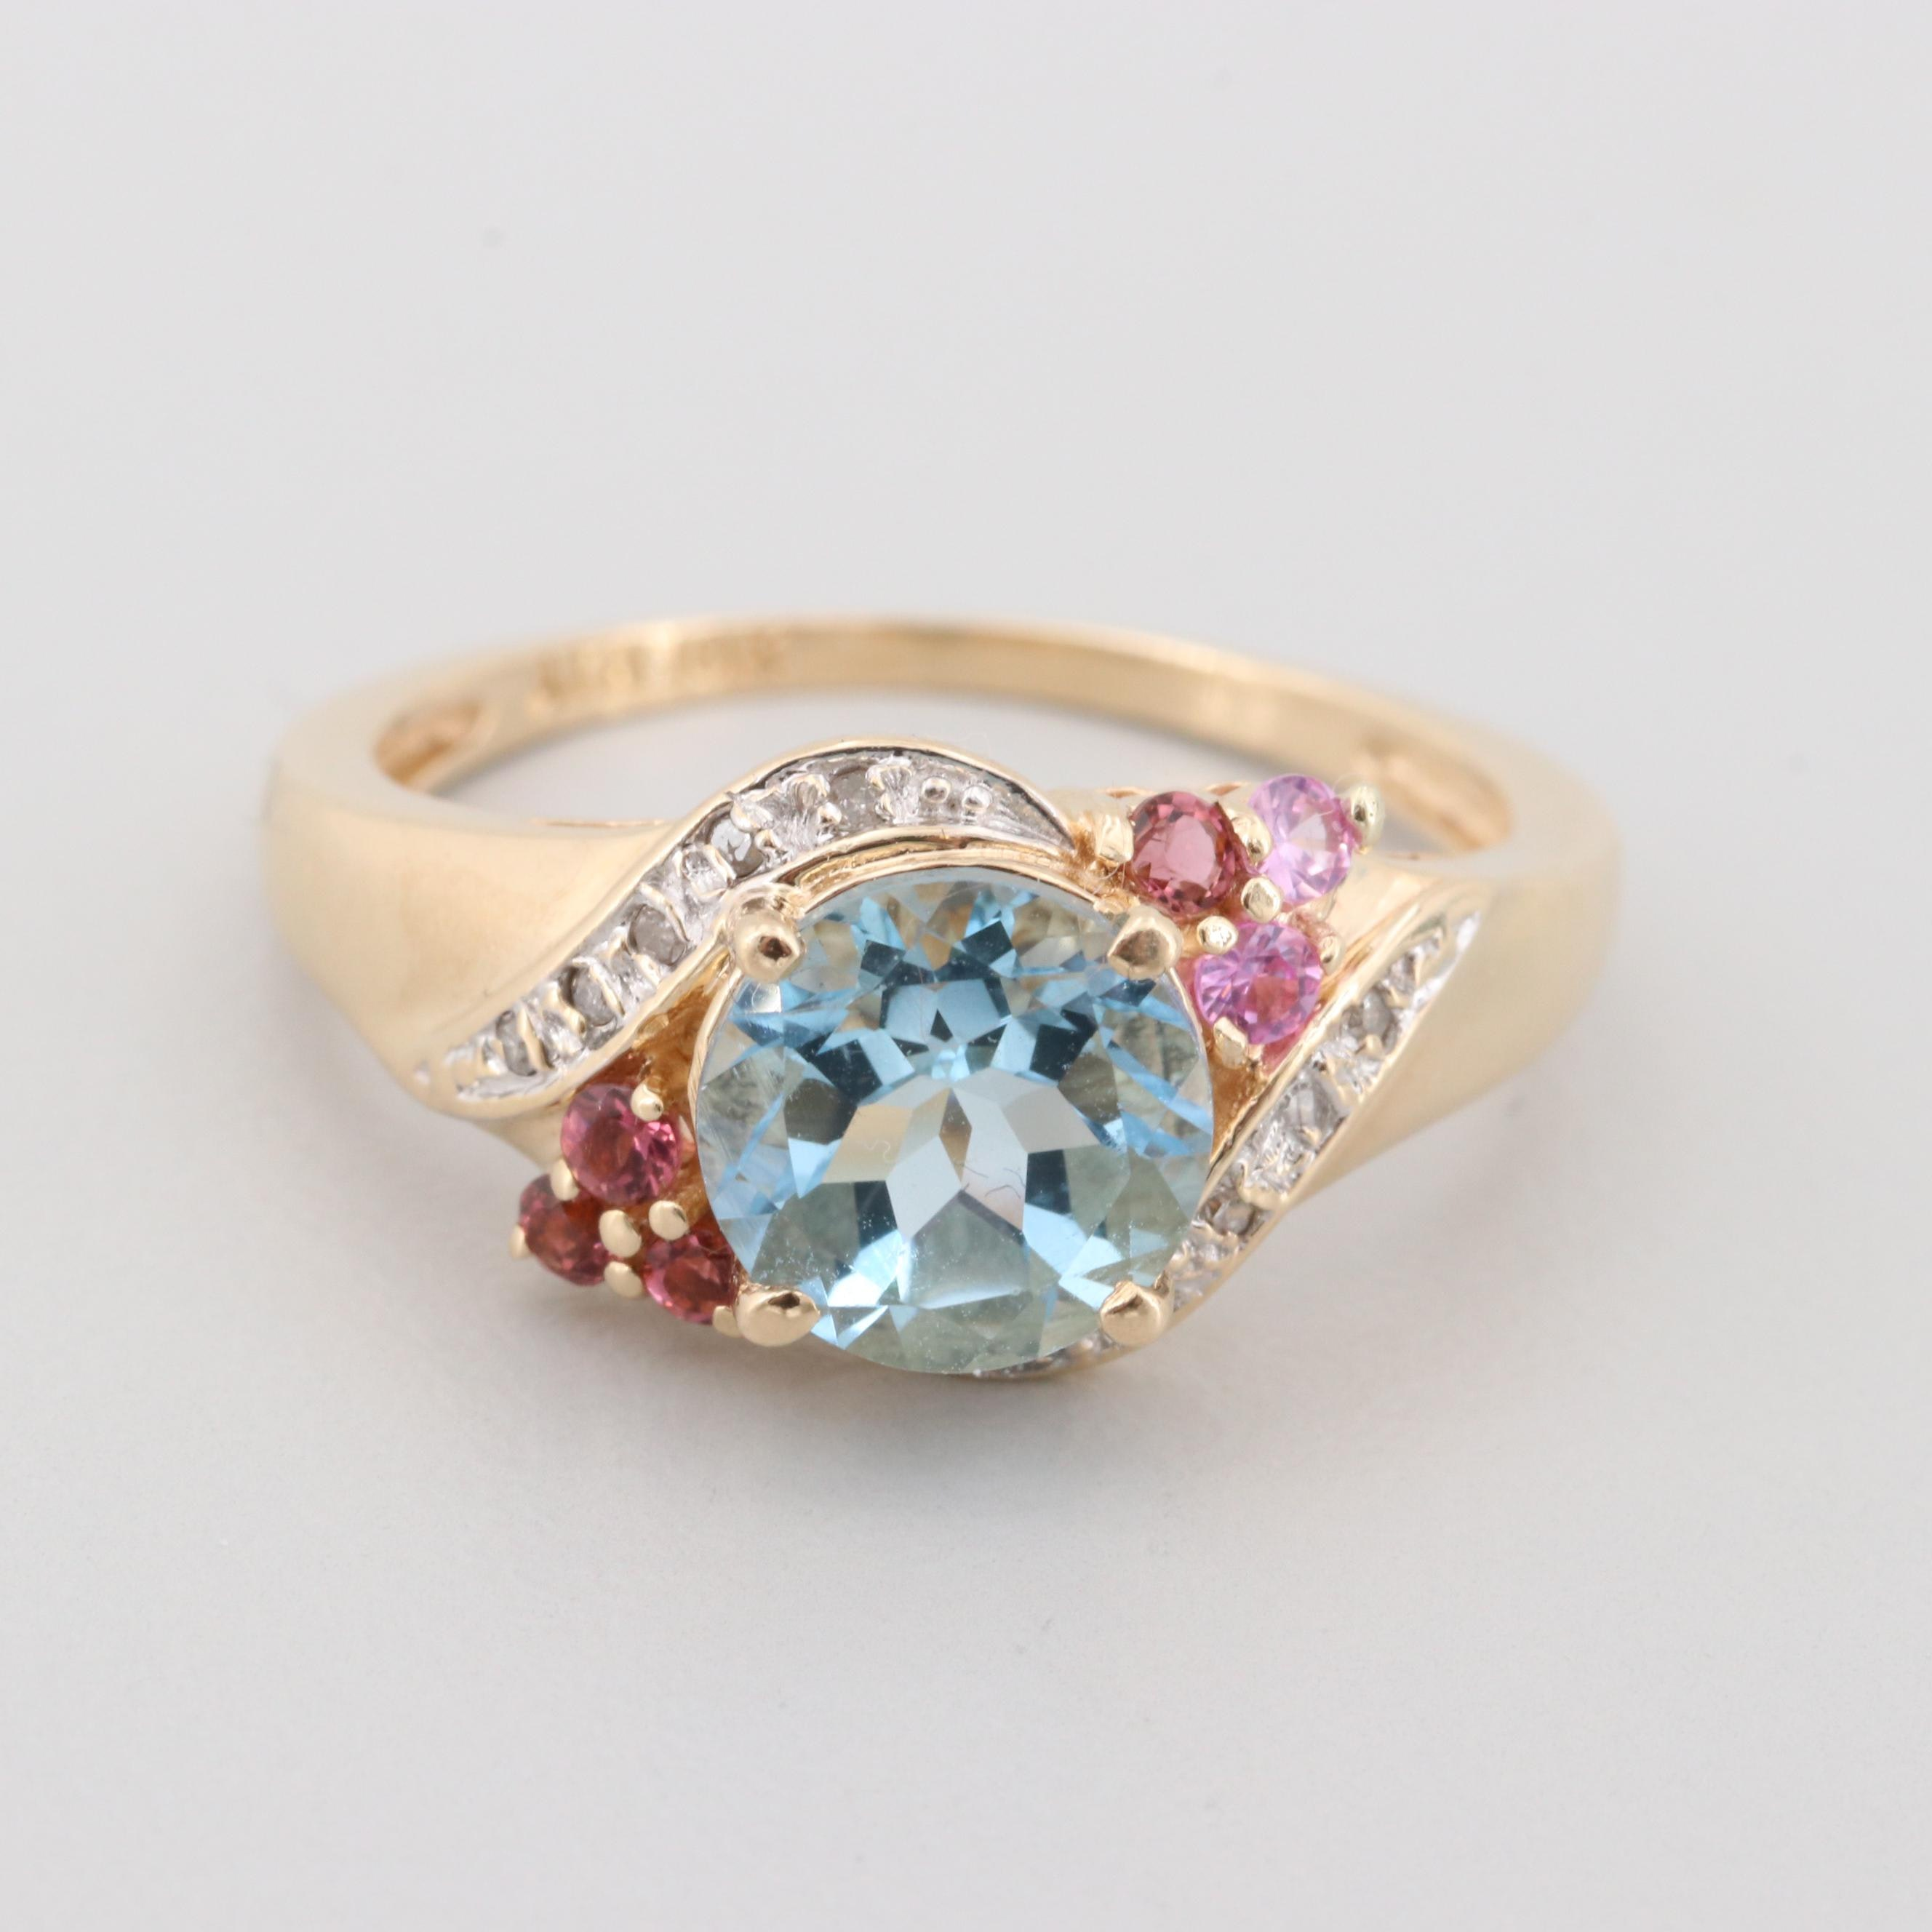 10K Yellow Gold Aquamarine, Diamond and Pink Tourmaline Ring